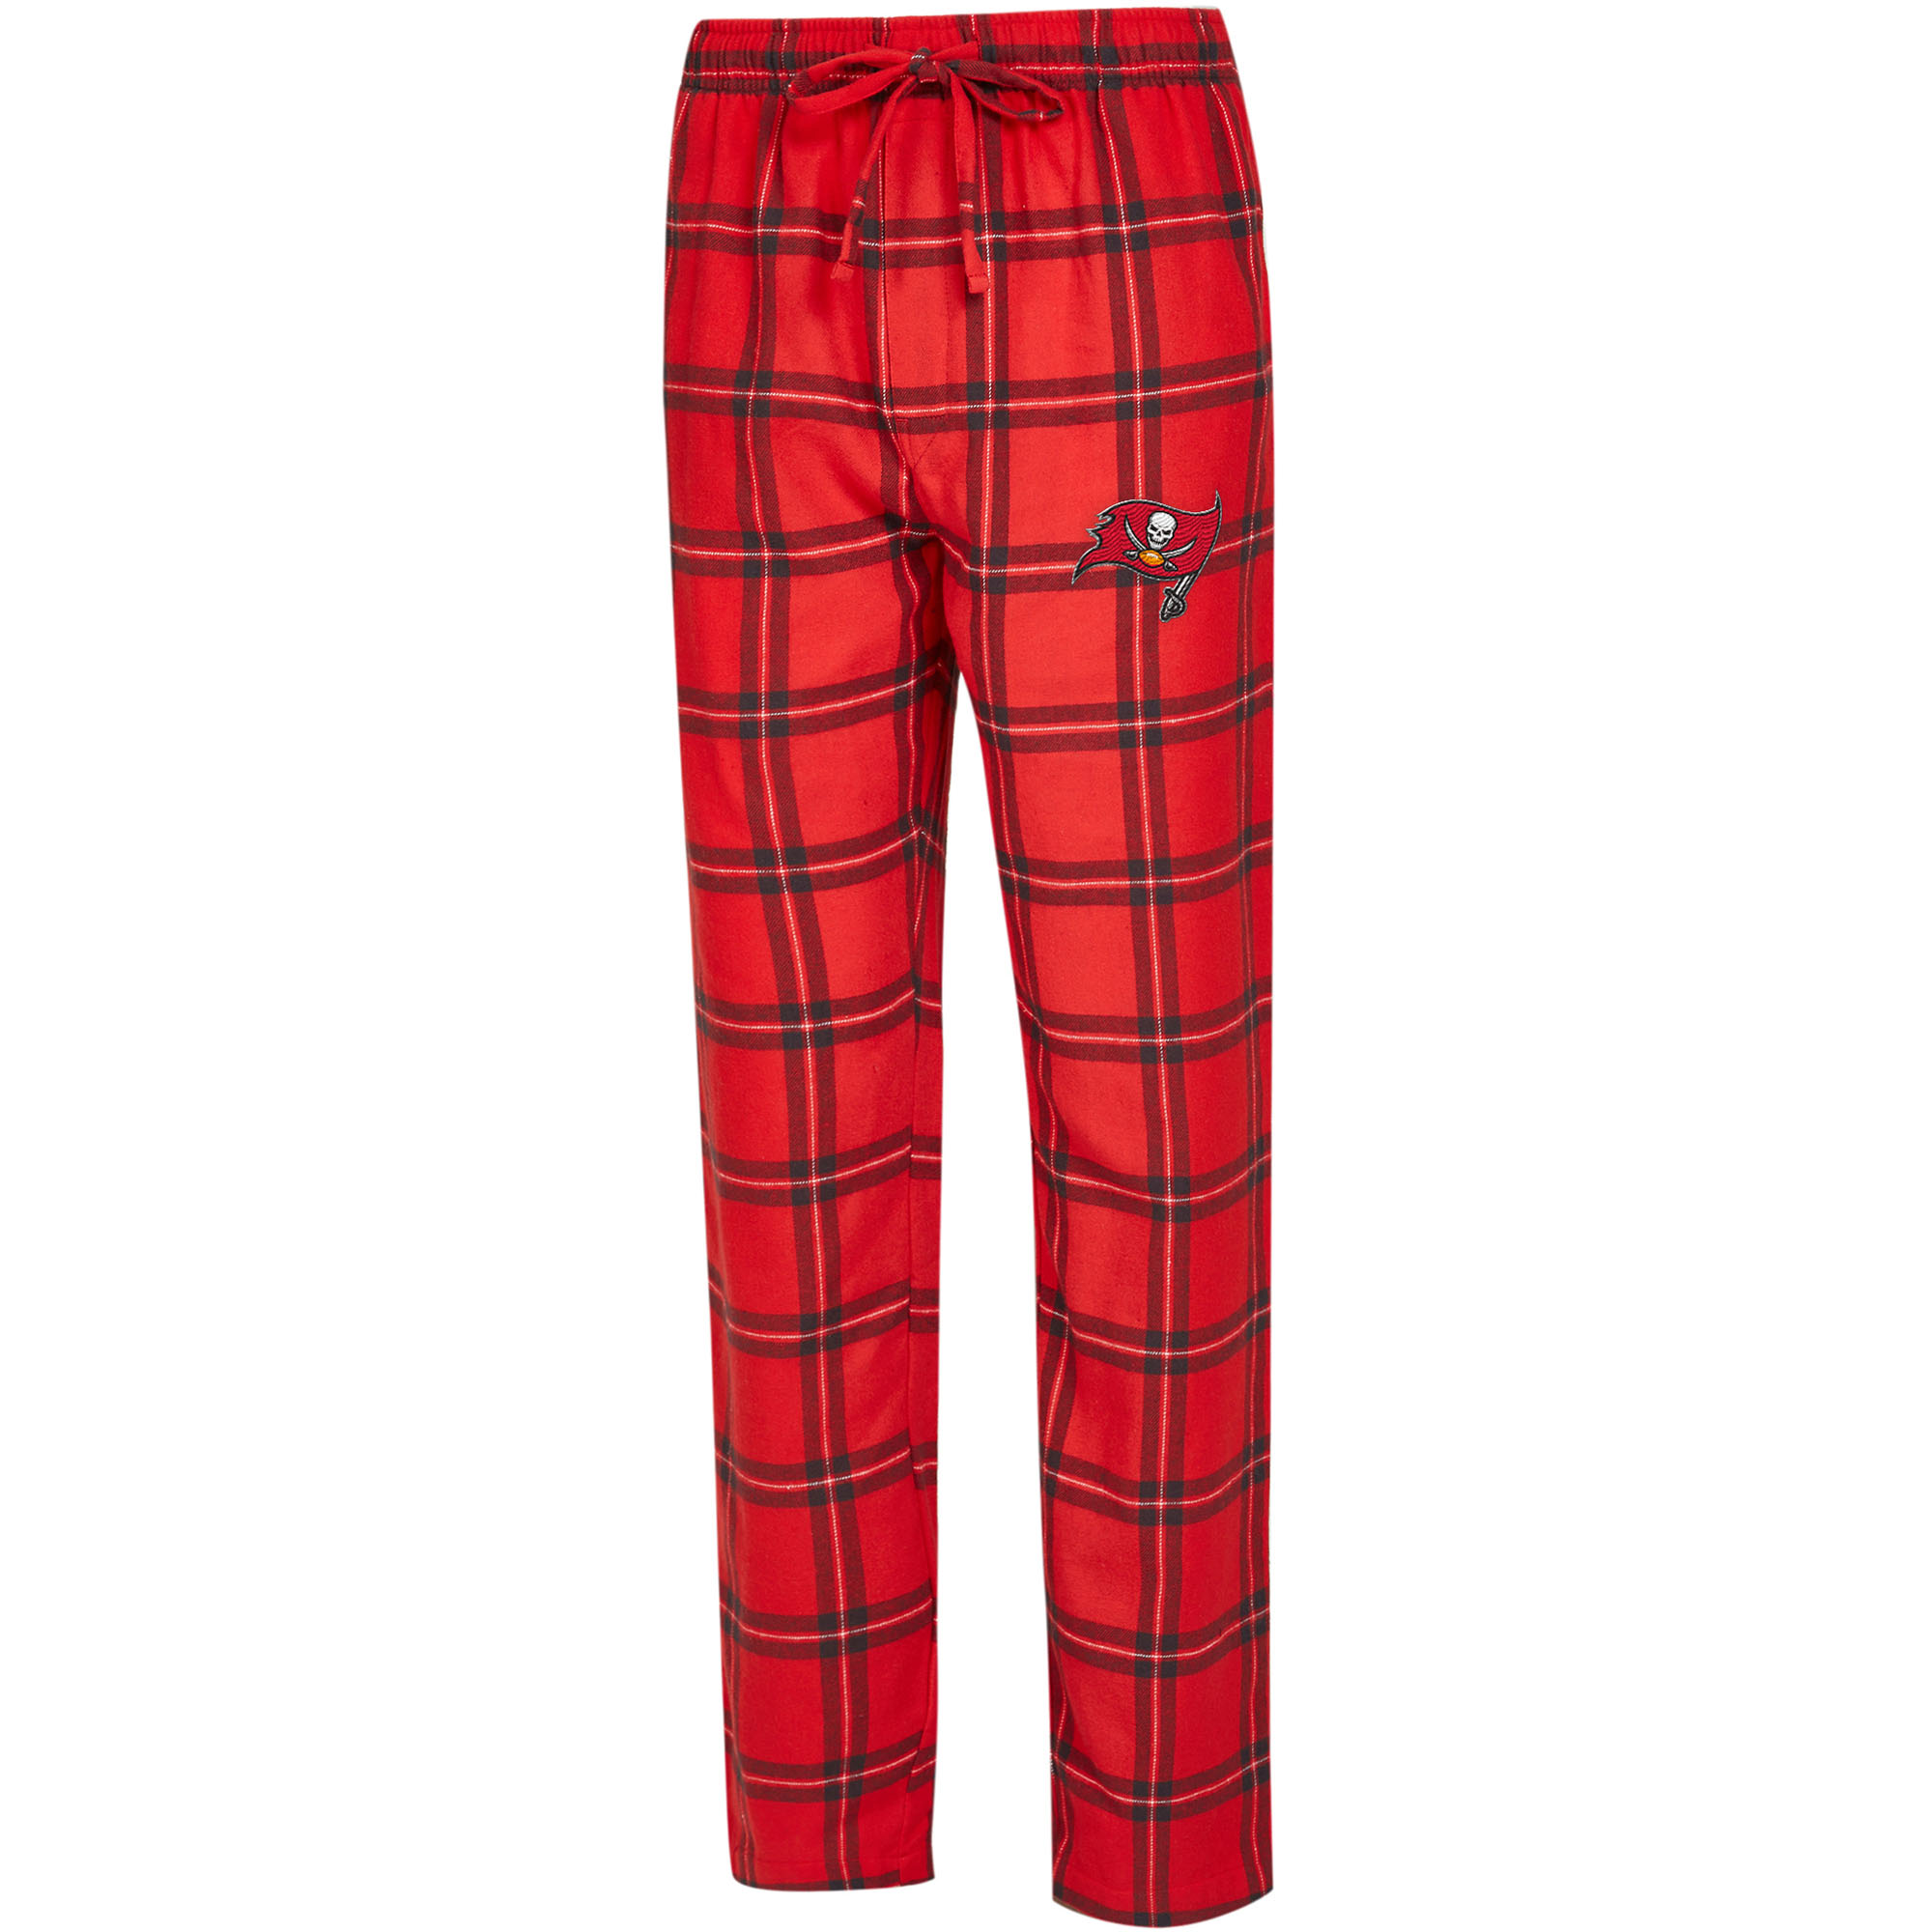 Tampa Bay Buccaneers Concepts Sport Big & Tall Homestretch Flannel Pants - Red/Pewter